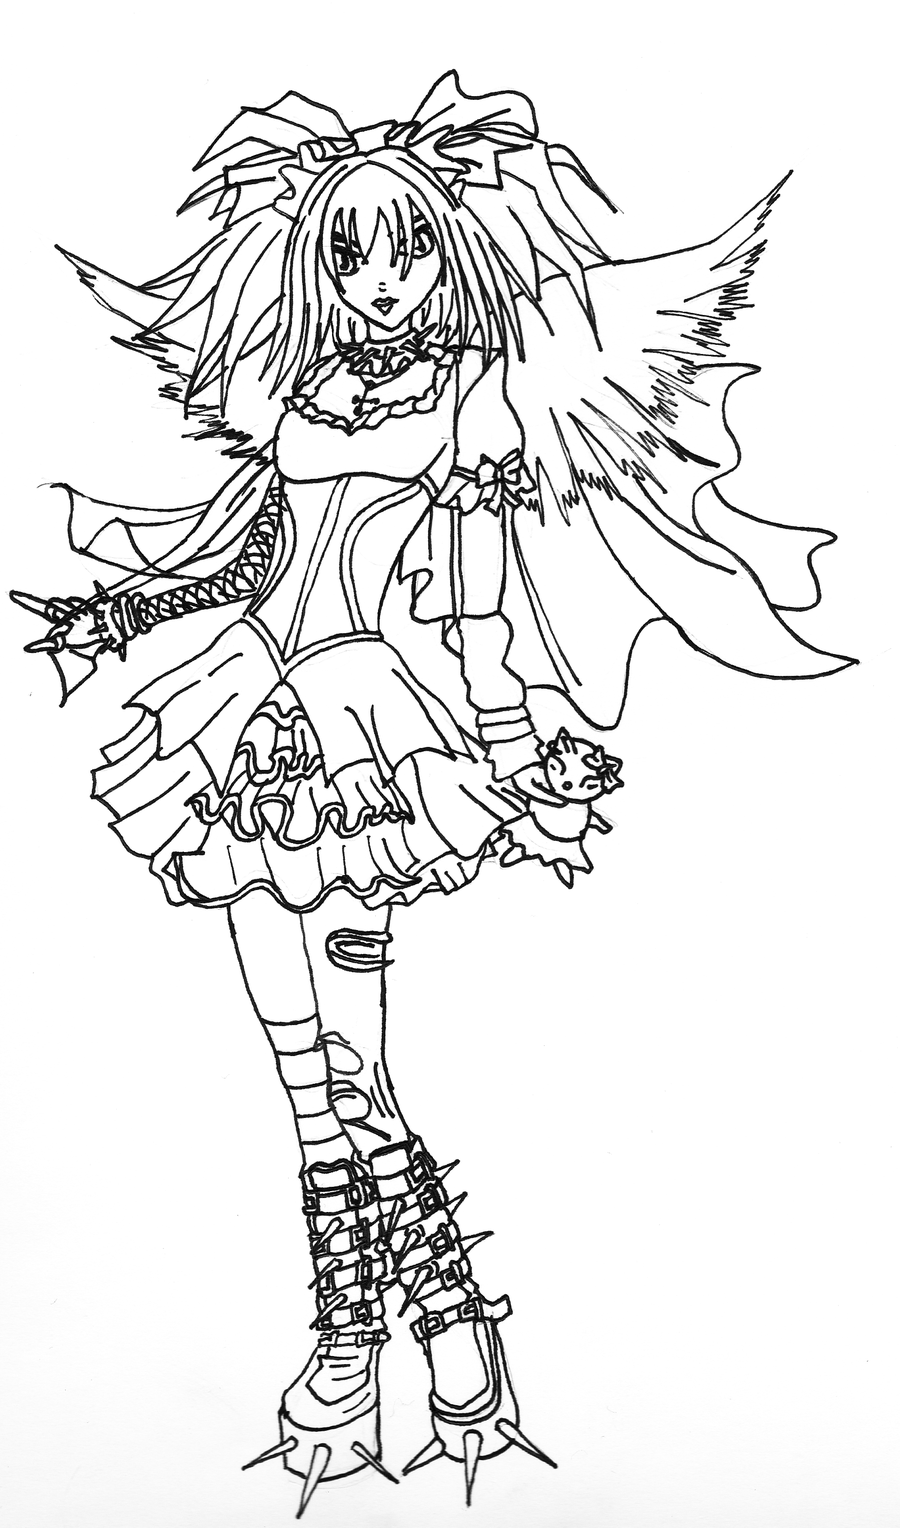 15 Pics of Gothic Girl Coloring Pages - deviantART Gothic Coloring ...